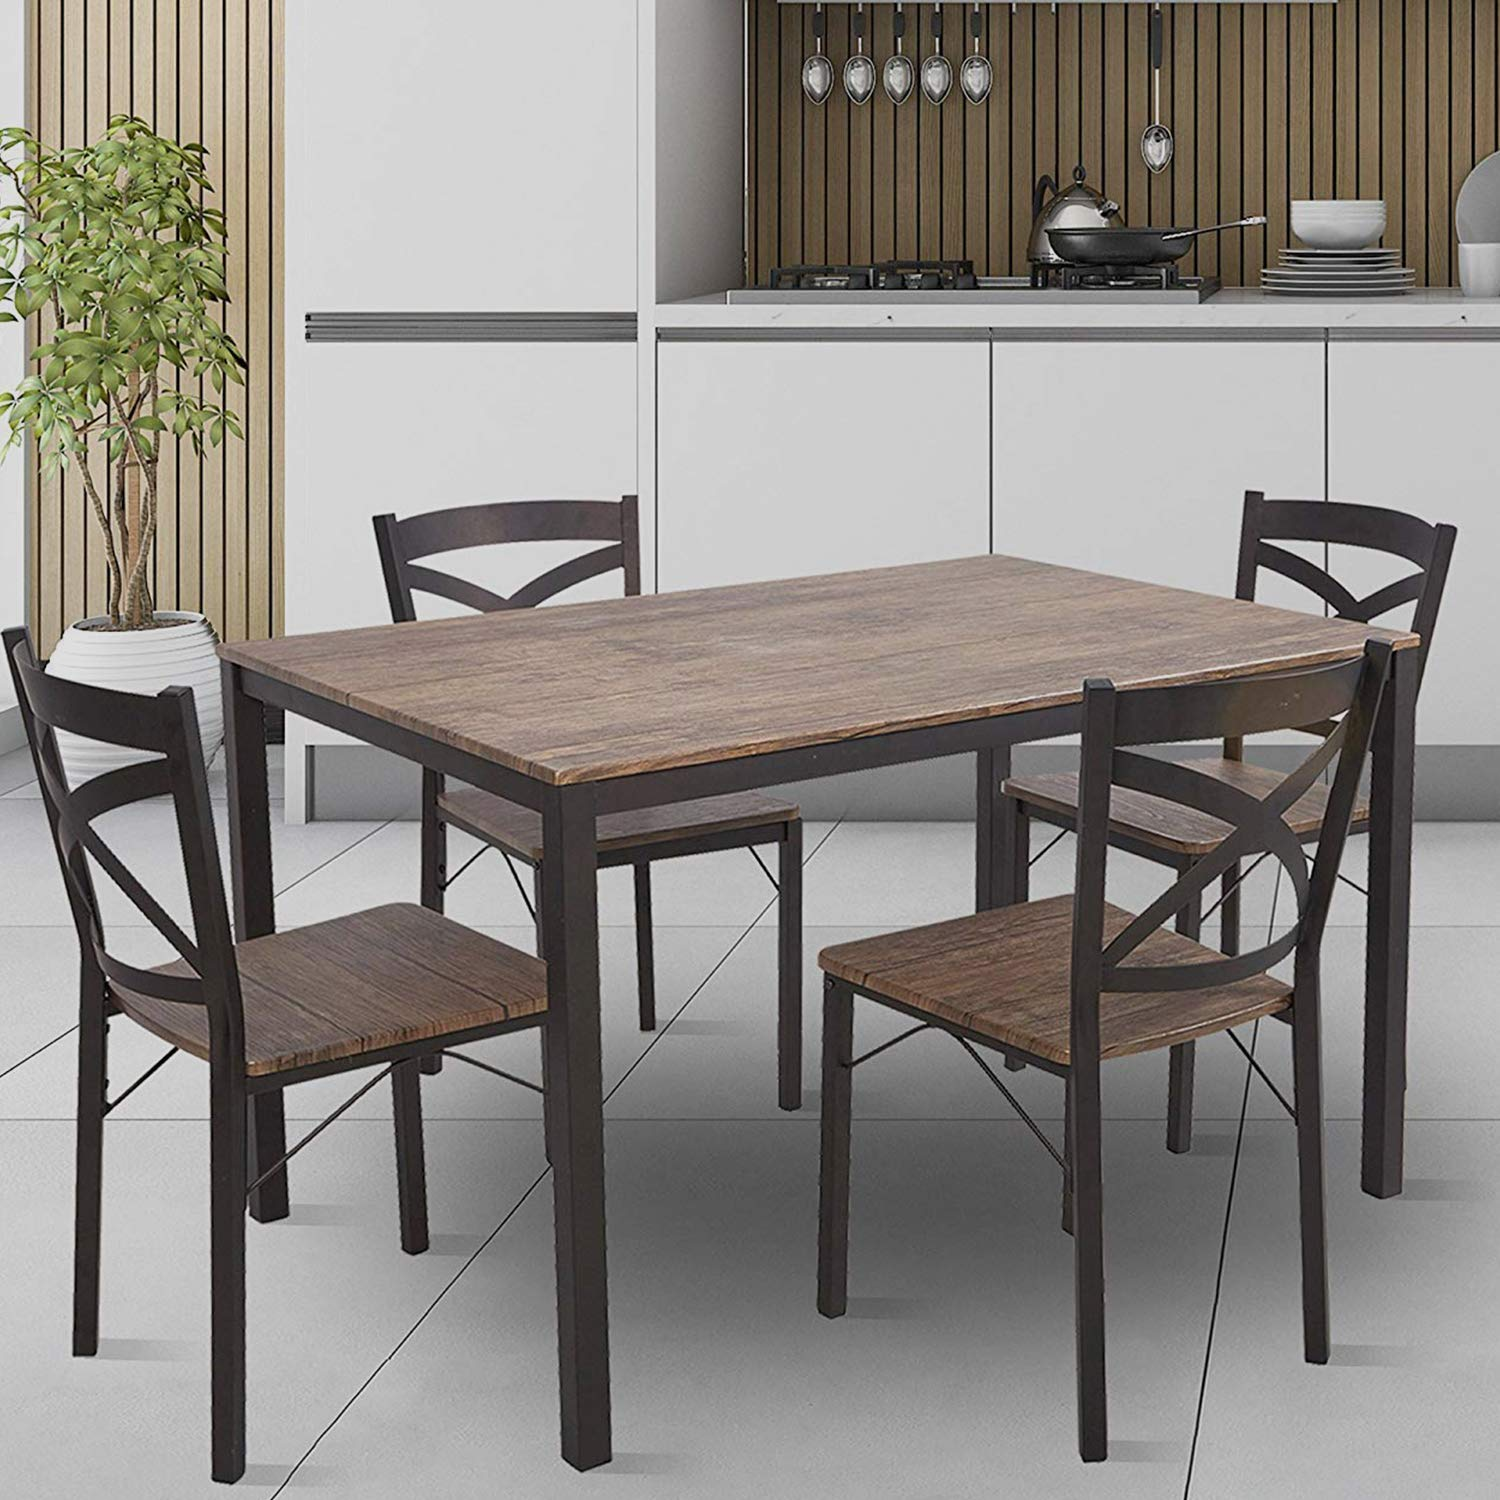 KARMAS PRODUCT 5 PC Wood Dining Set Table and Chairs for 4 Person with Metal Legs,Home Kitchen Breakfast Furniture,Espresso